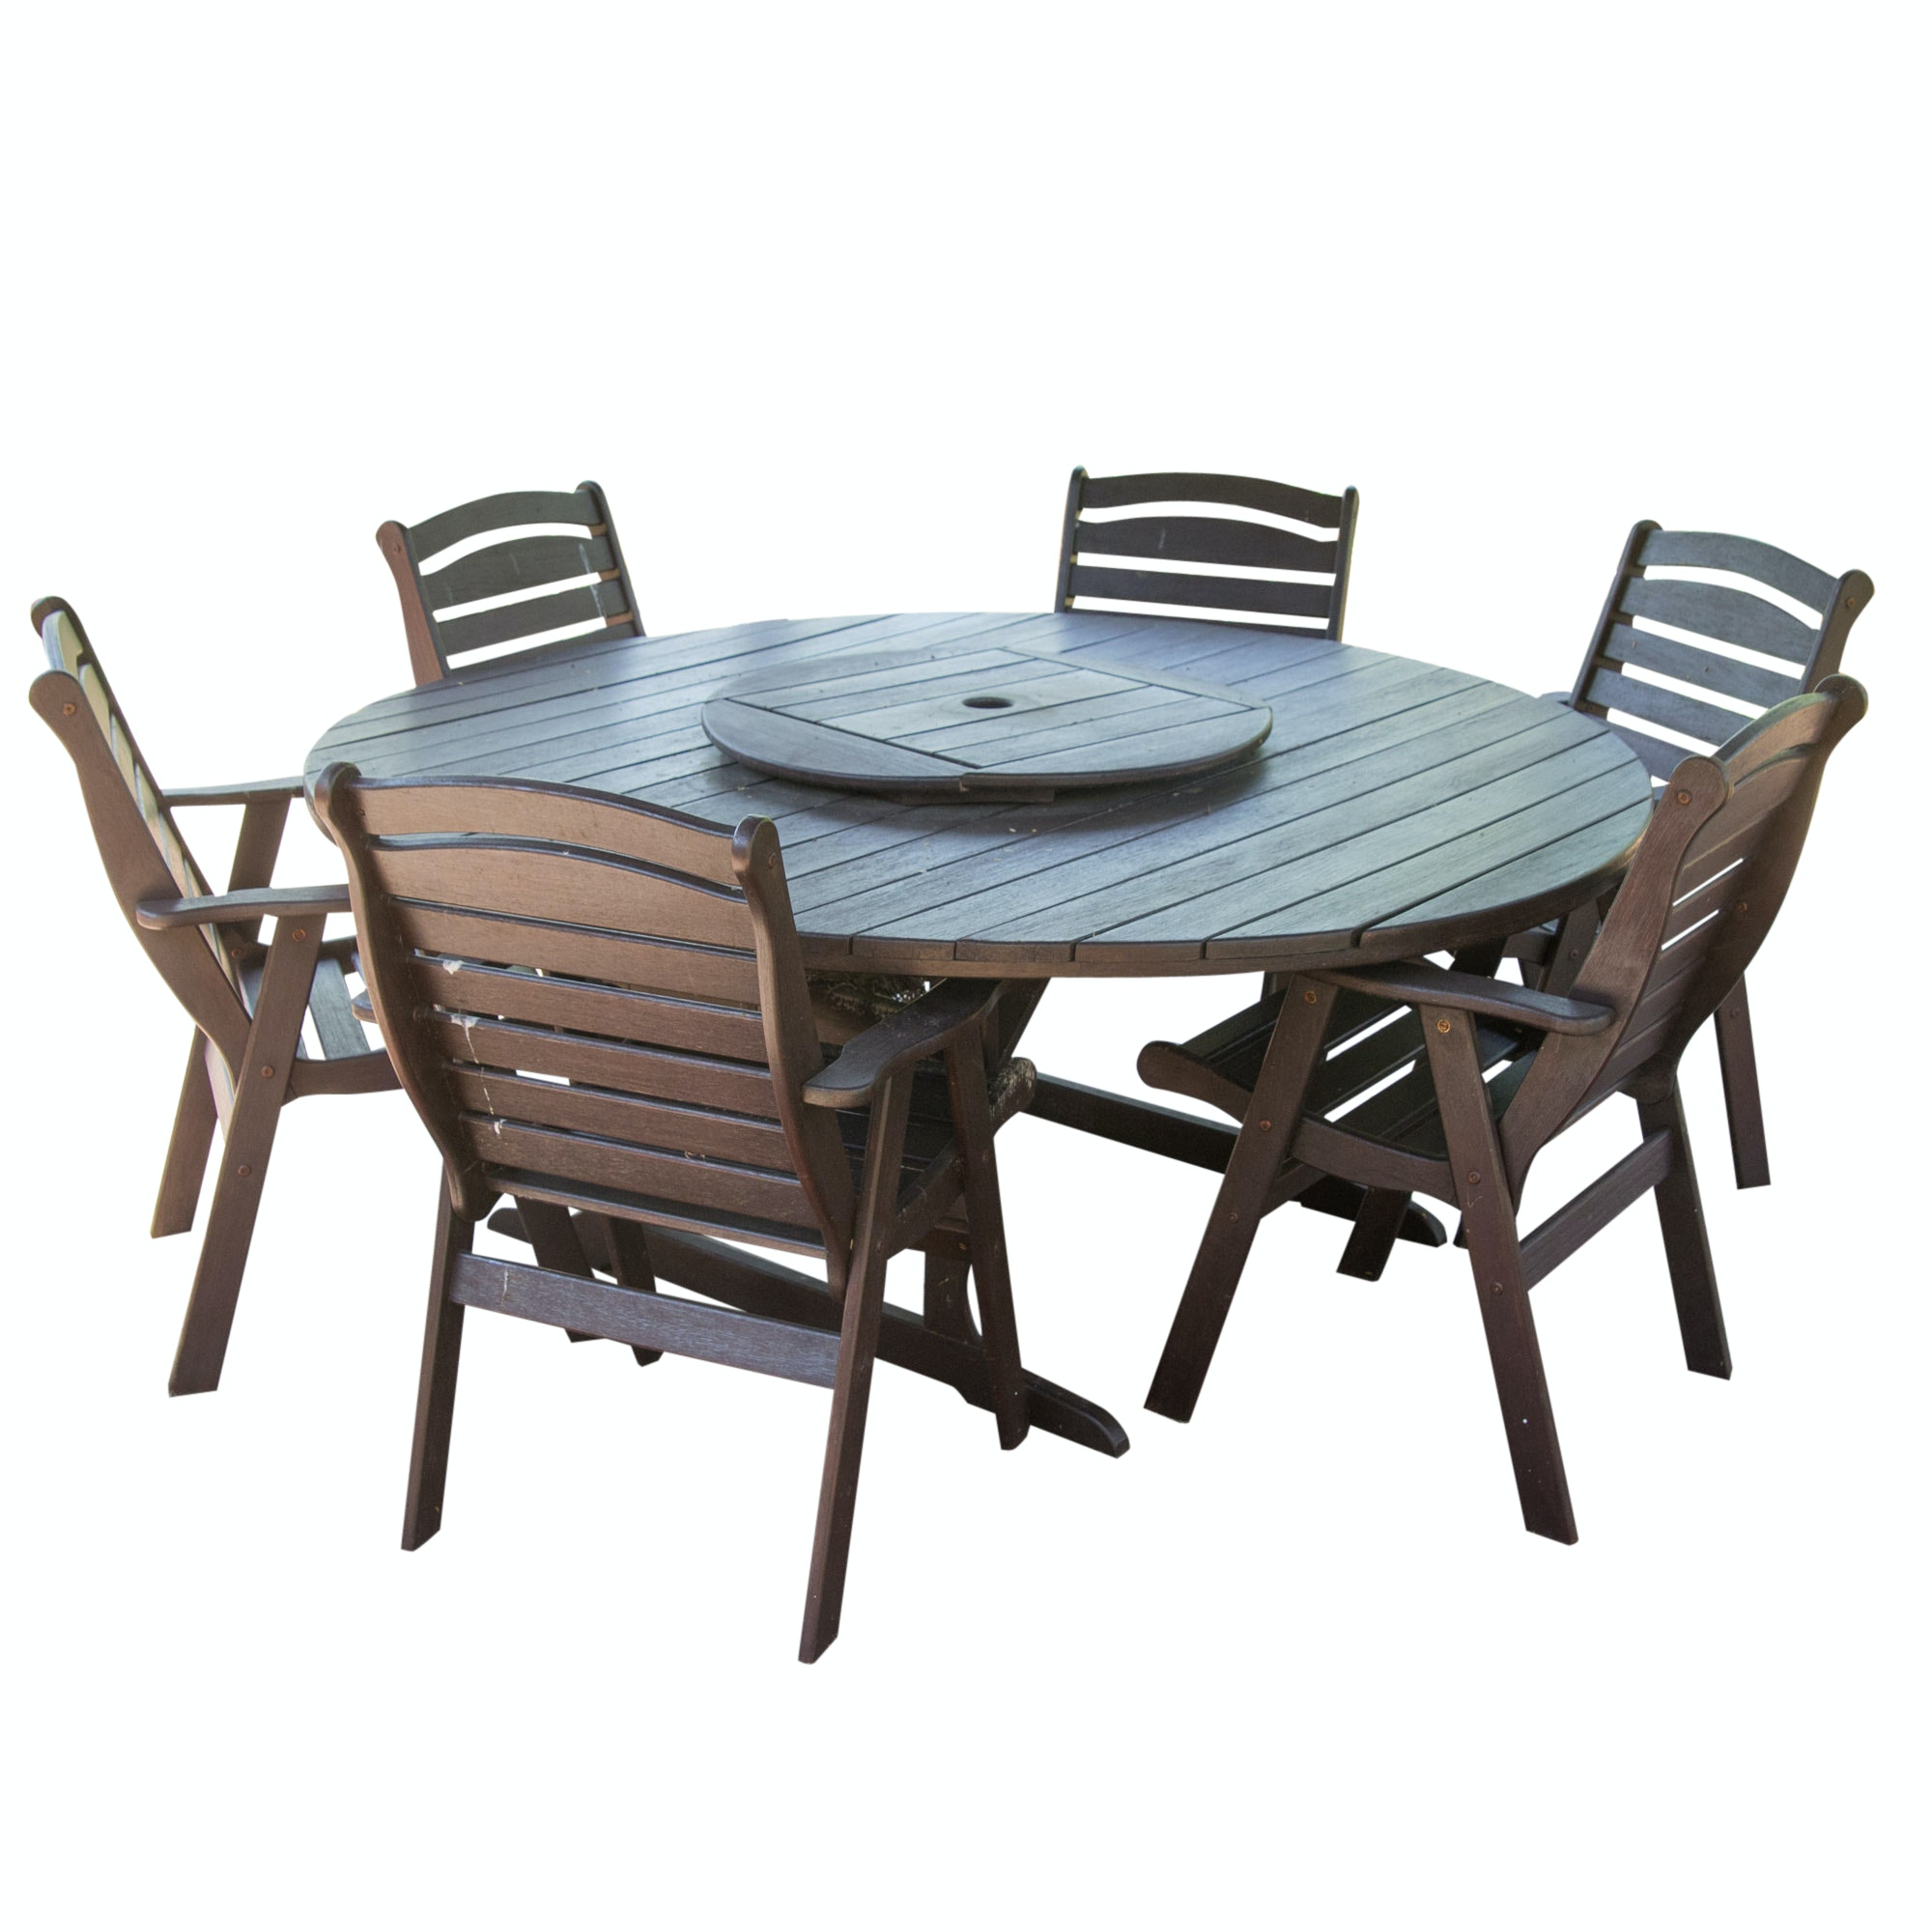 jensen jarrah outdoor table and chairs ebth rh ebth com jensen jarrah outdoor furniture oil jensen jarrah outdoor furniture for sale